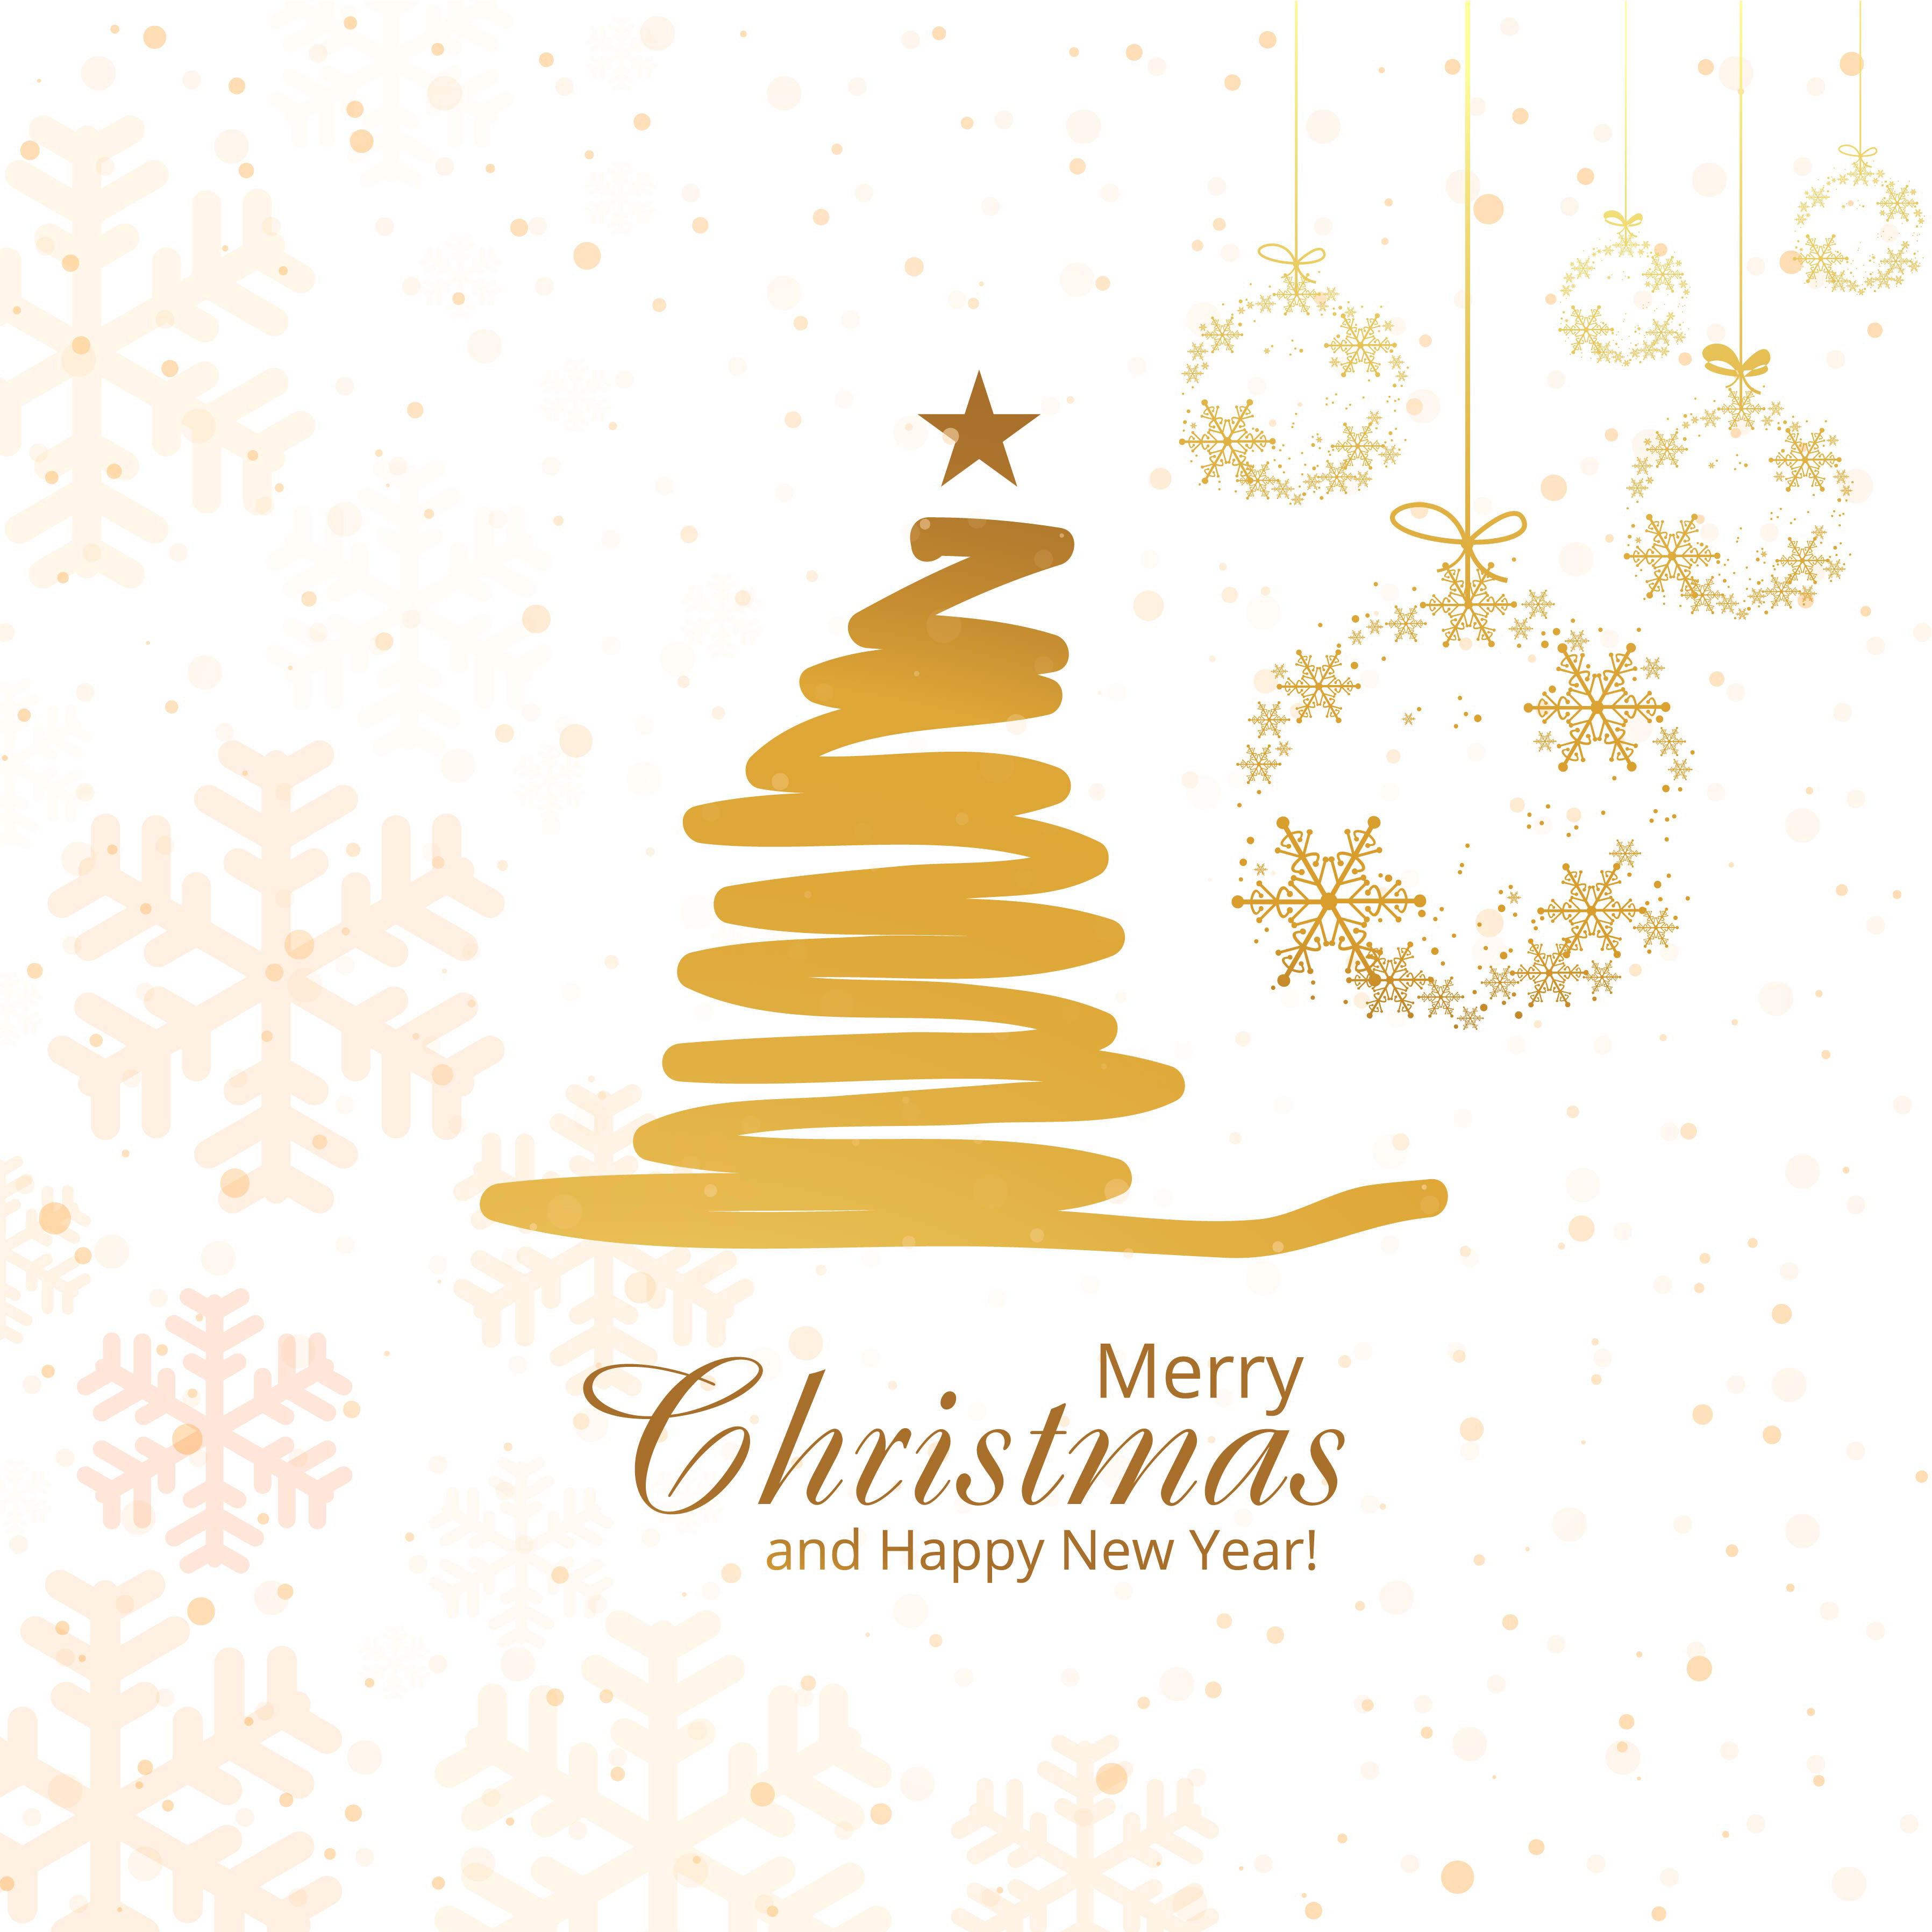 Merry christmas tree with snowflakes vector background - Download ...